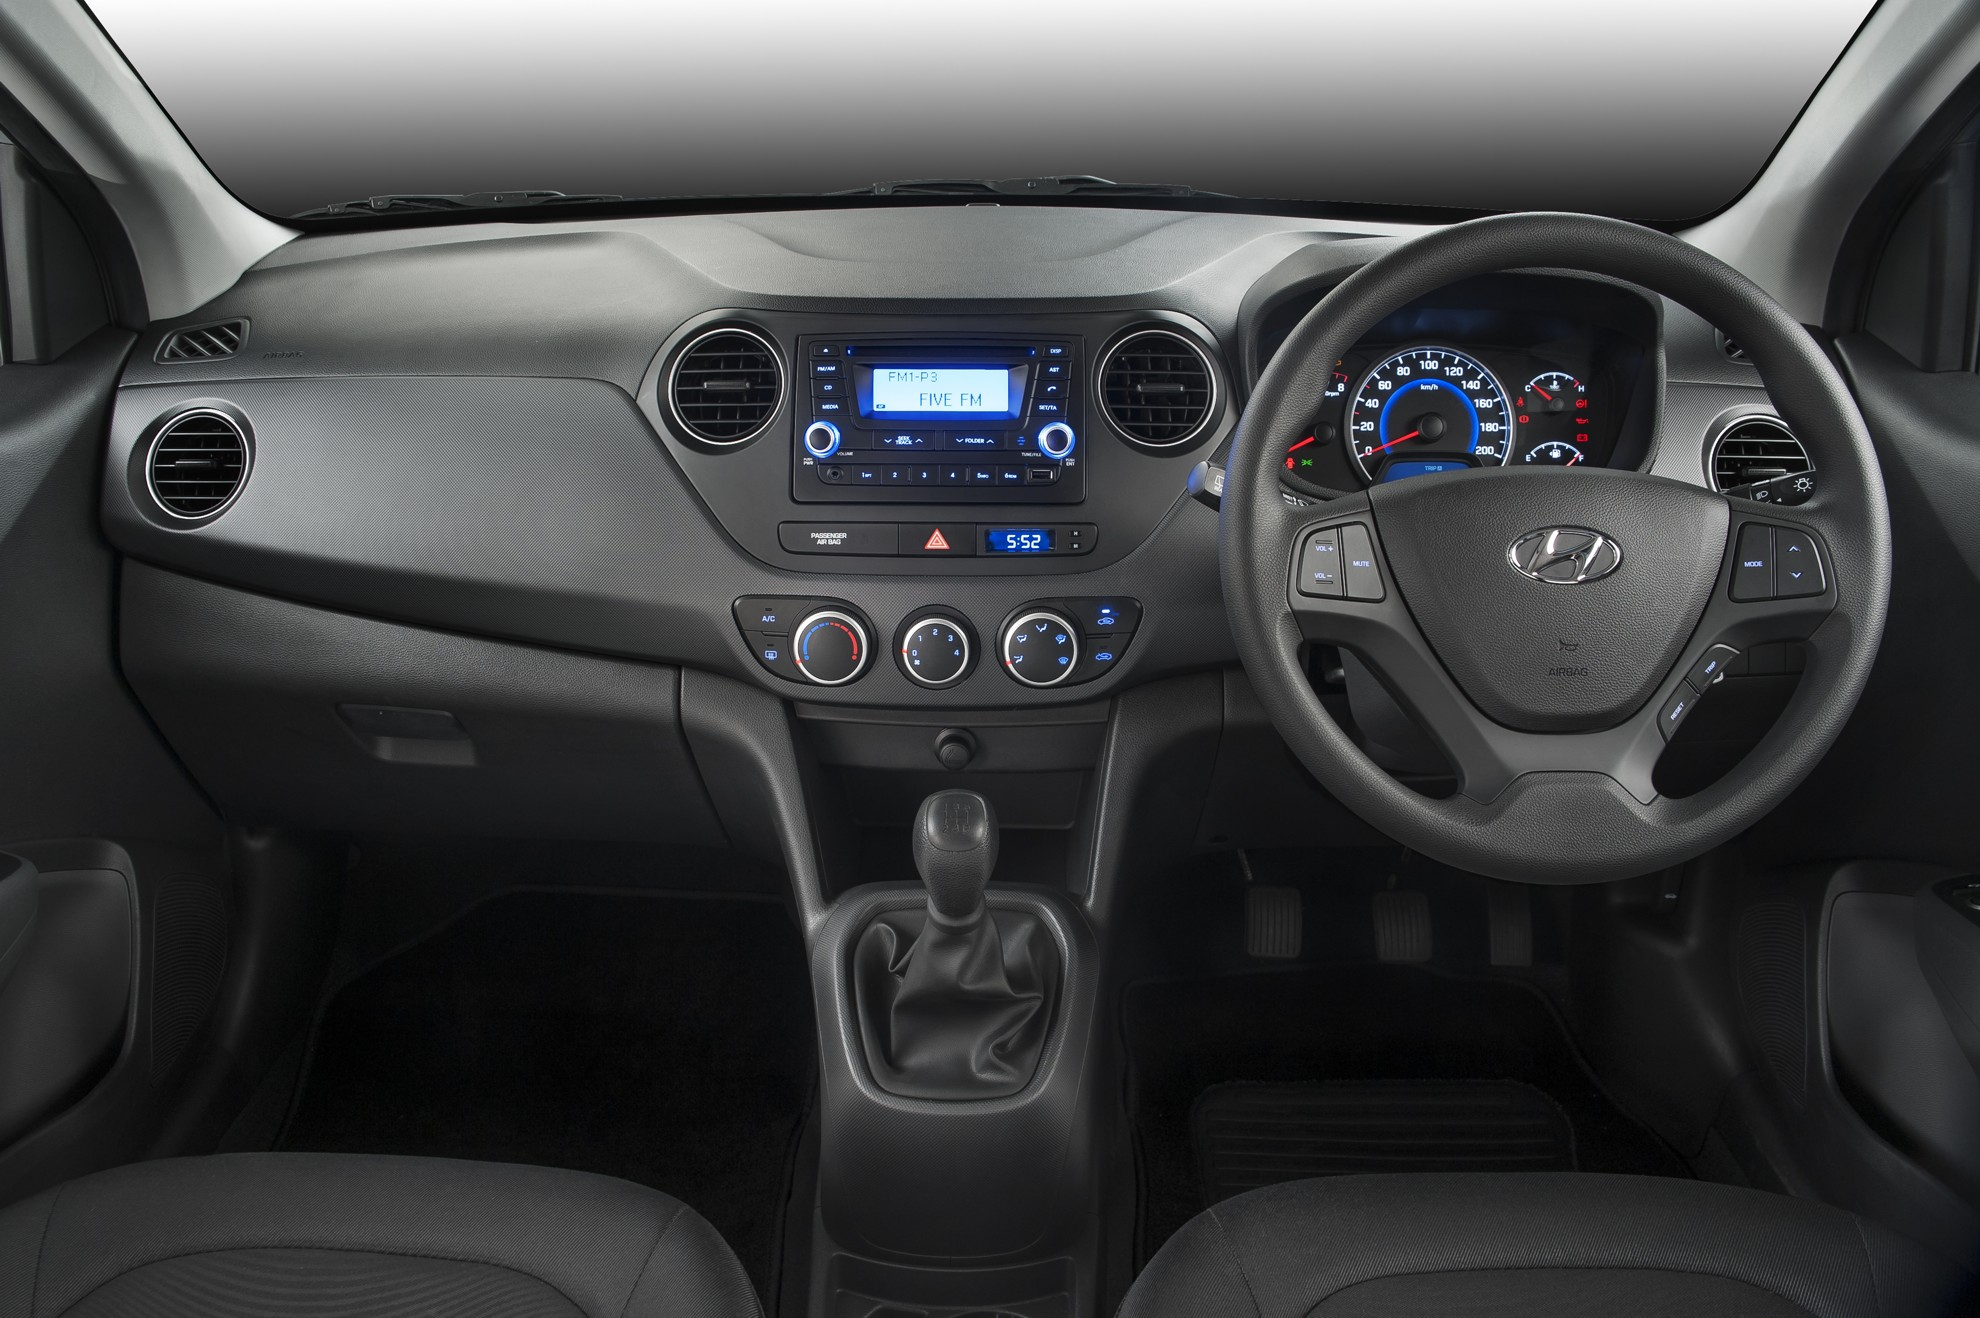 Hyundai-Grand-i10-Interior